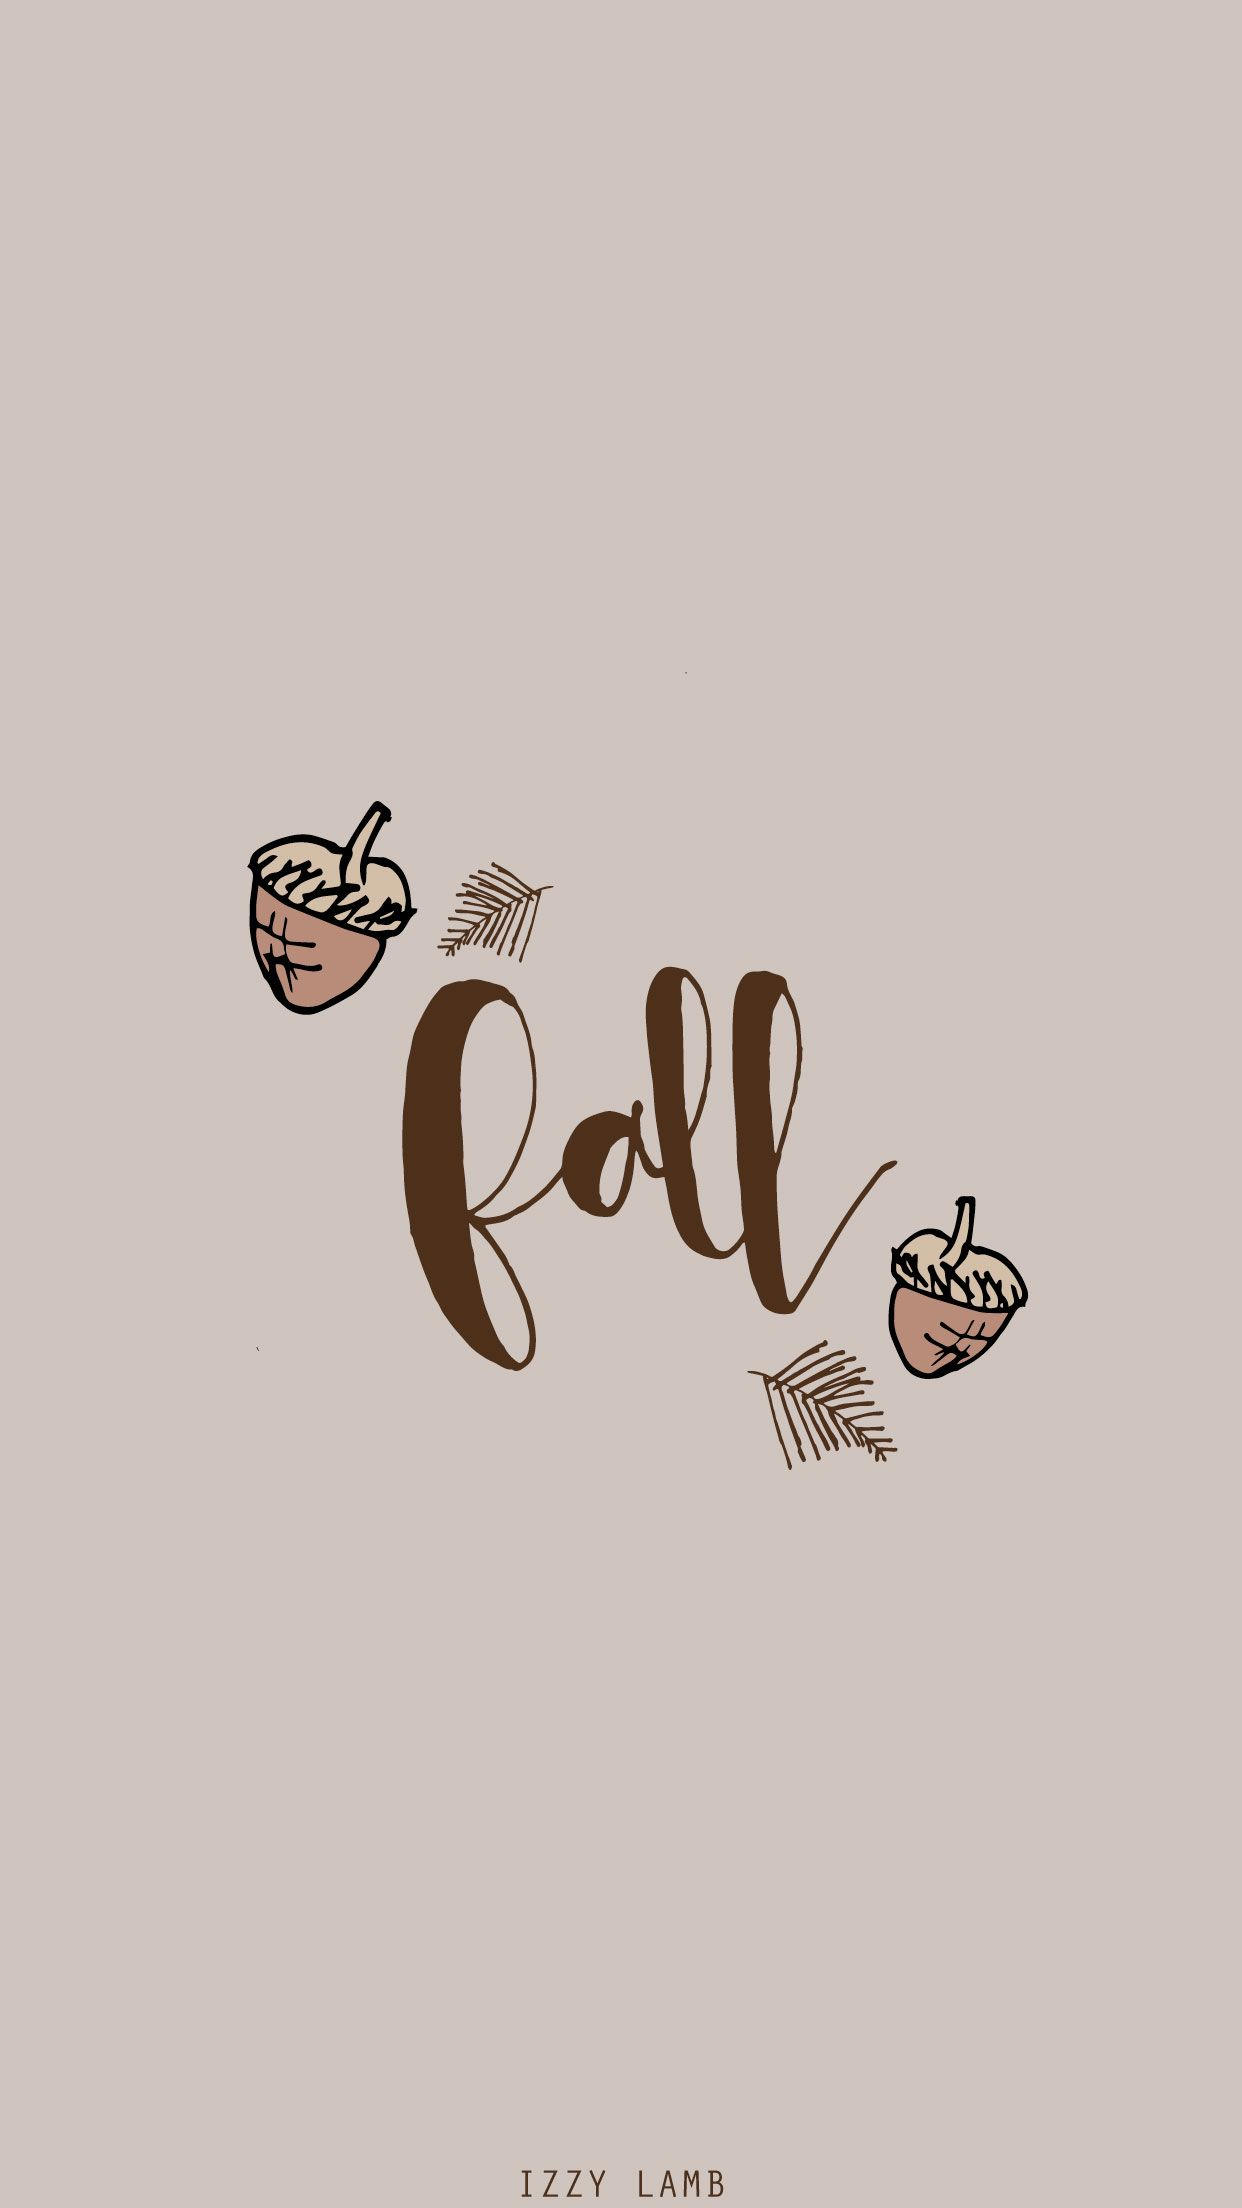 Pin By Lindsey Trn On Iphone Wallpaper Iphone Wallpaper Fall Cute Fall Wallpaper Fall Wallpaper